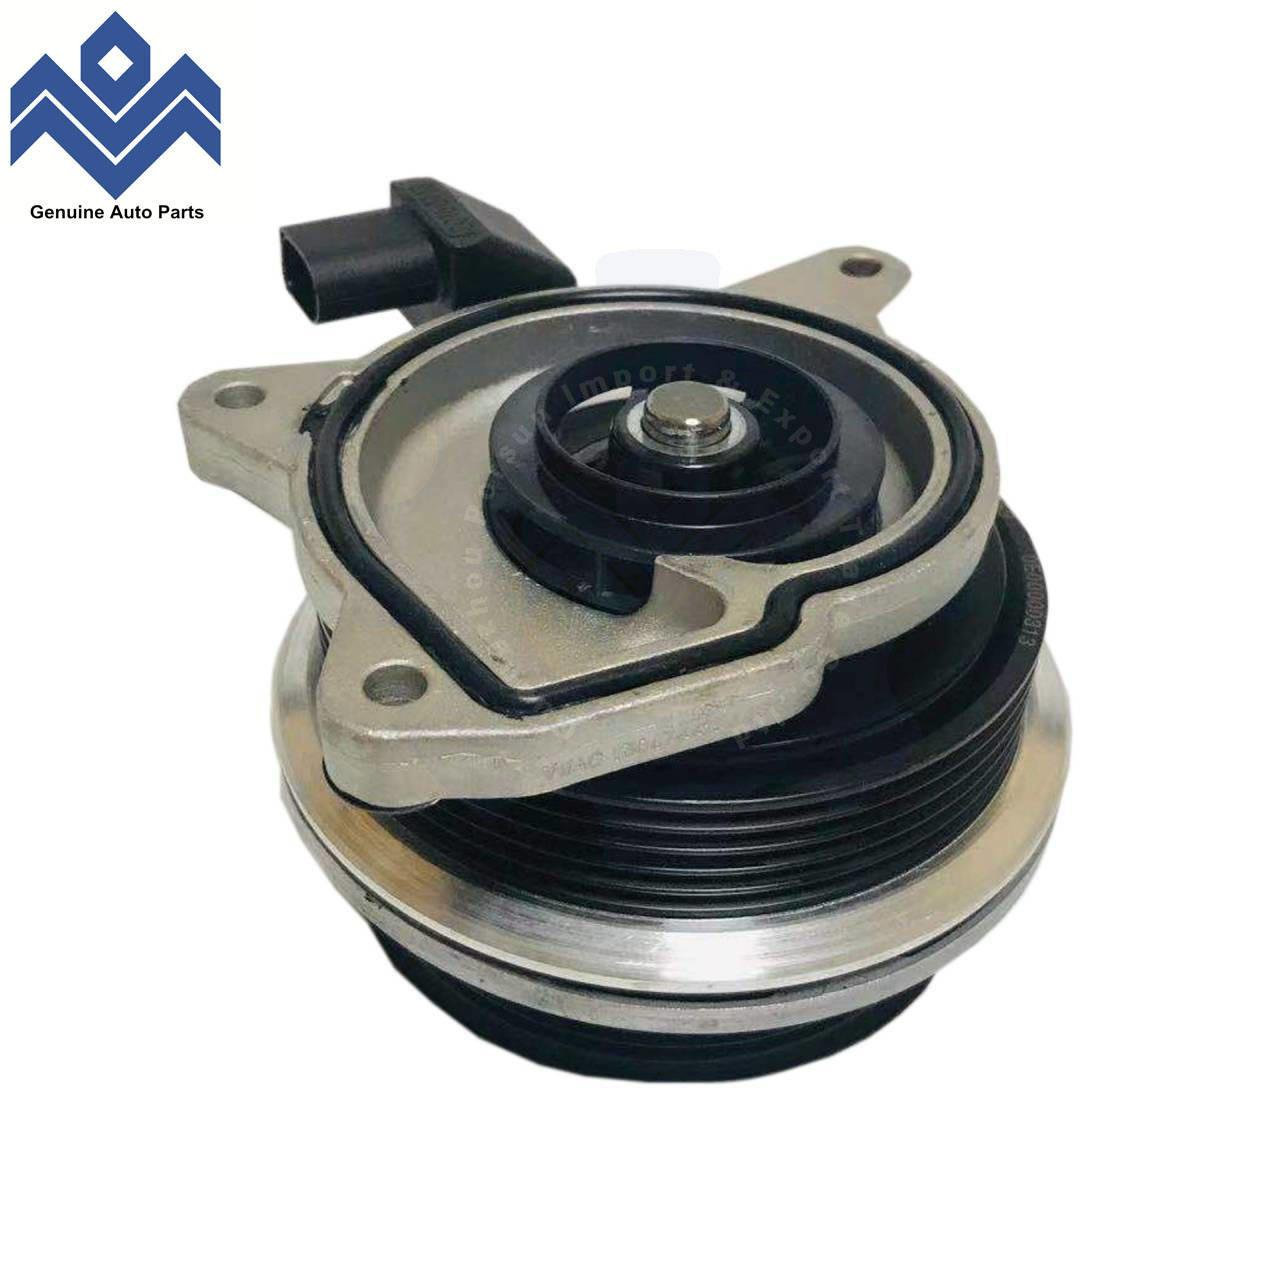 Quality Water pump for Audi A1 Seat VW Beetle Scirocco Tiguan 1.4 TSI 03C 121 004 J D E for sale